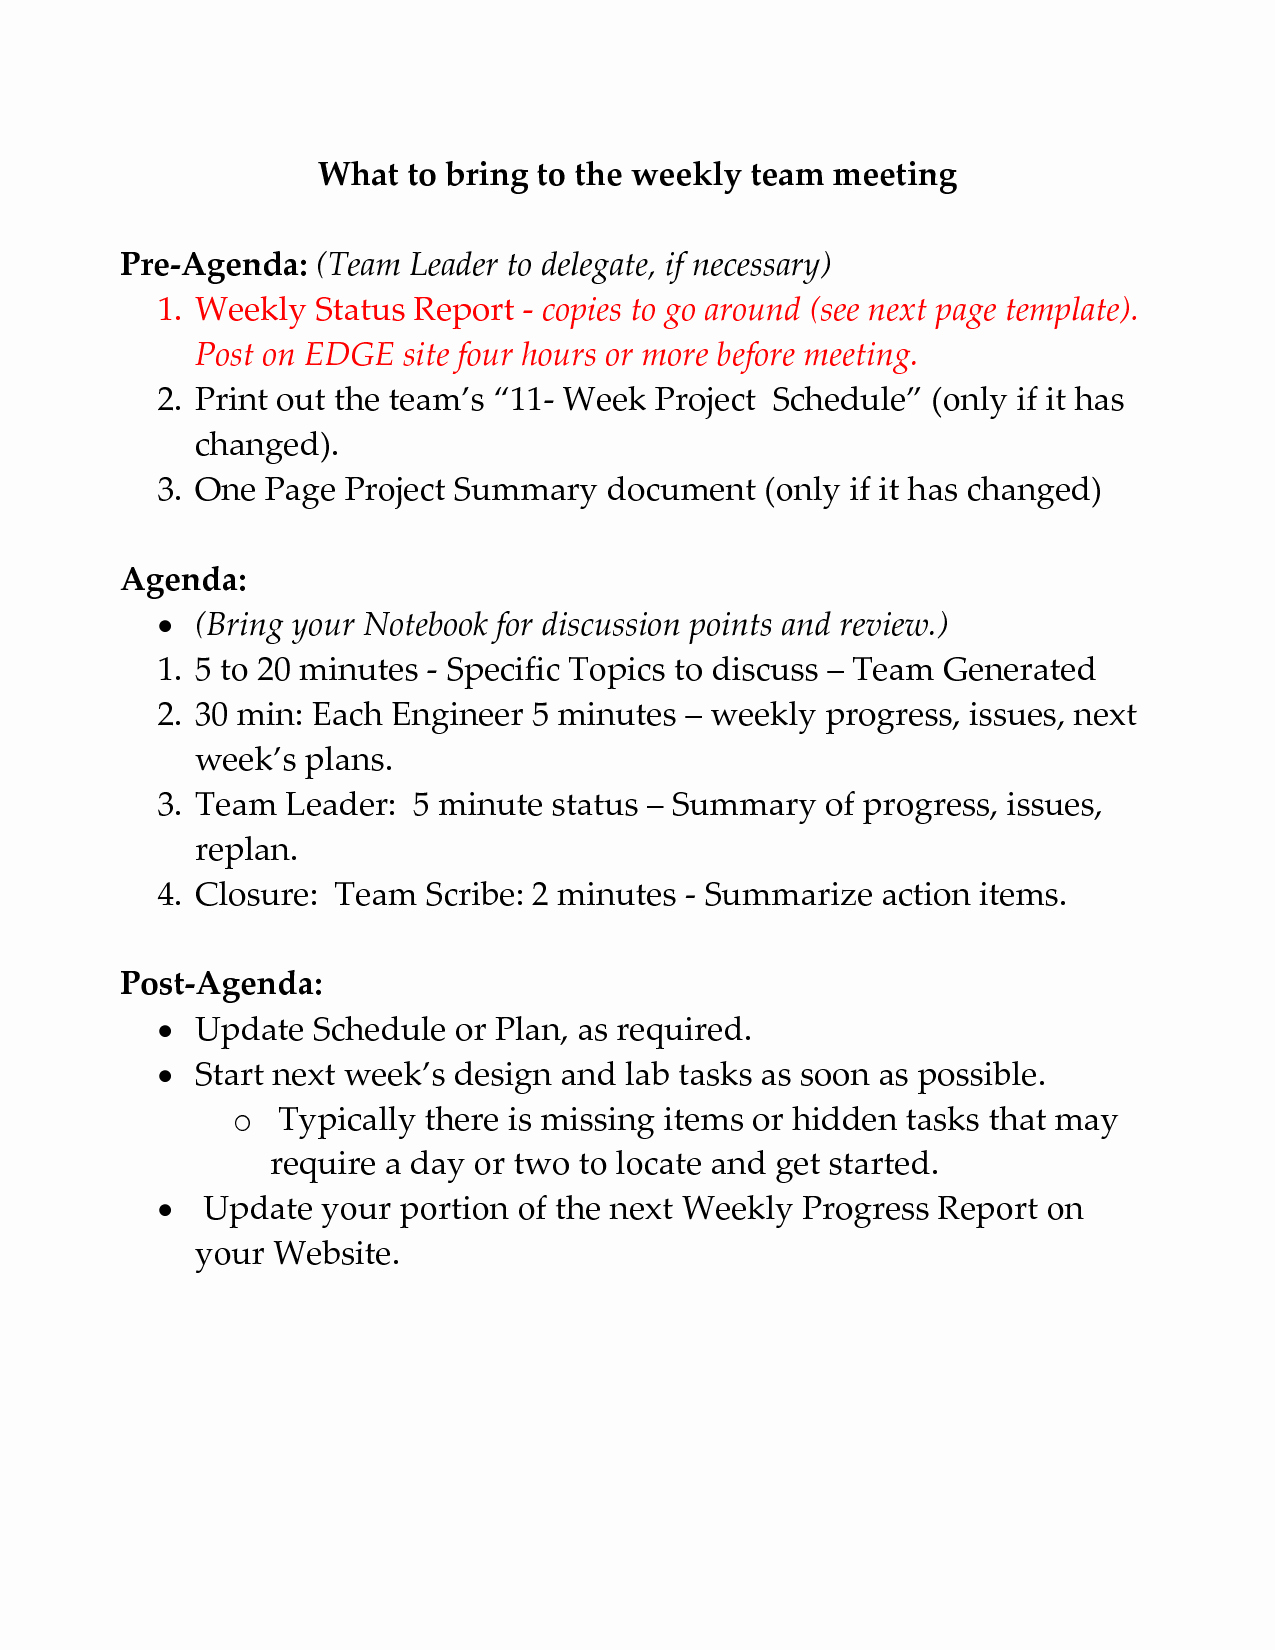 Weekly Team Meeting Agenda Template Awesome Best S Of Weekly Team Meeting Agenda Templates Team